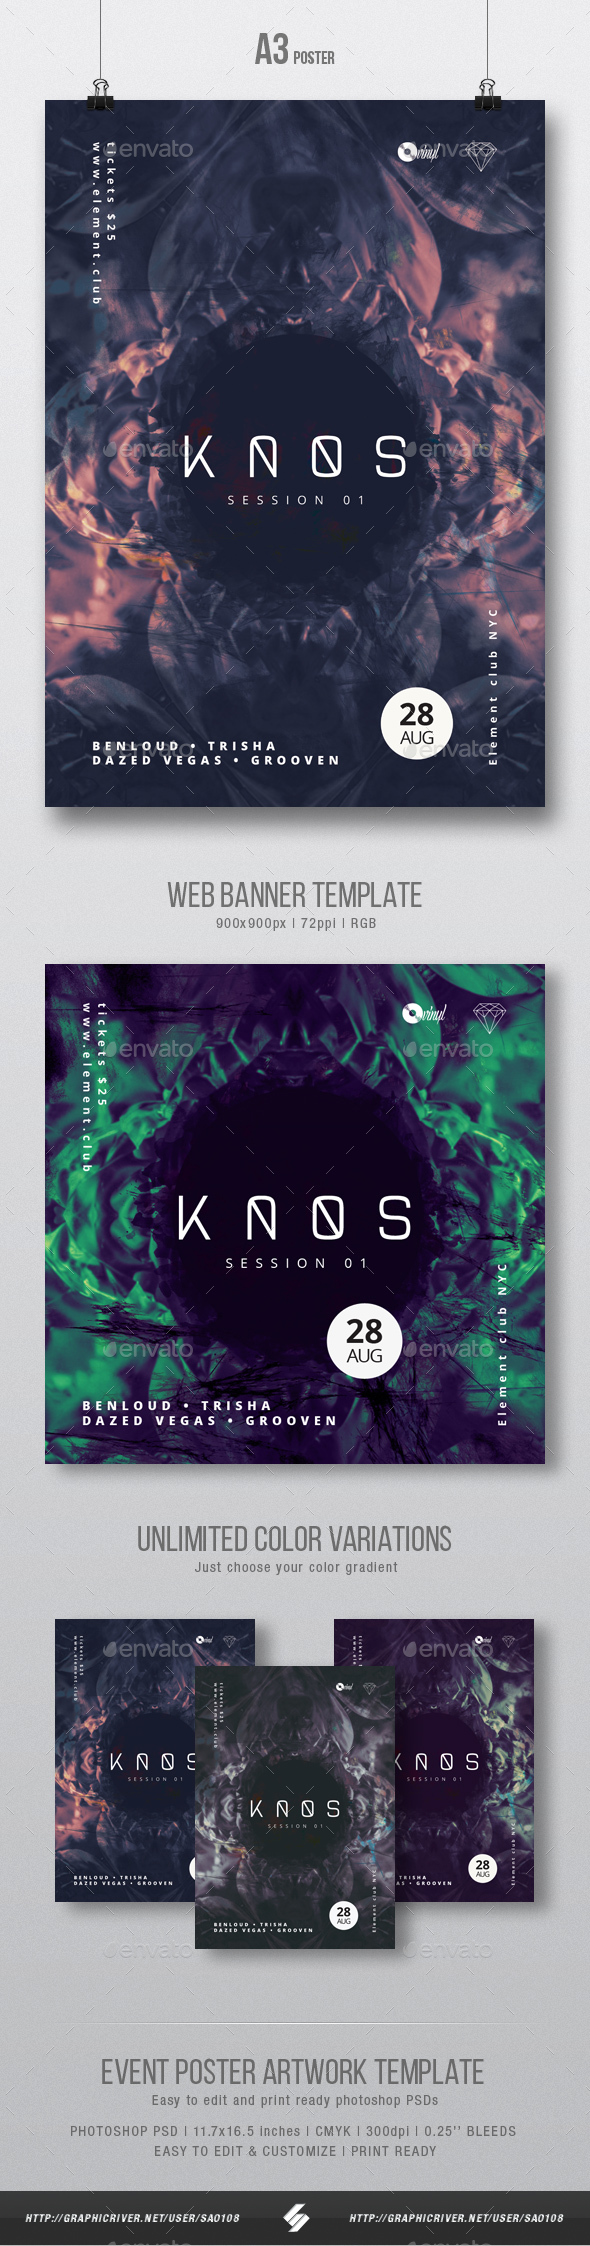 Kaos 01 - Progressive Party Flyer / Poster Artwork Template A3 - Clubs & Parties Events